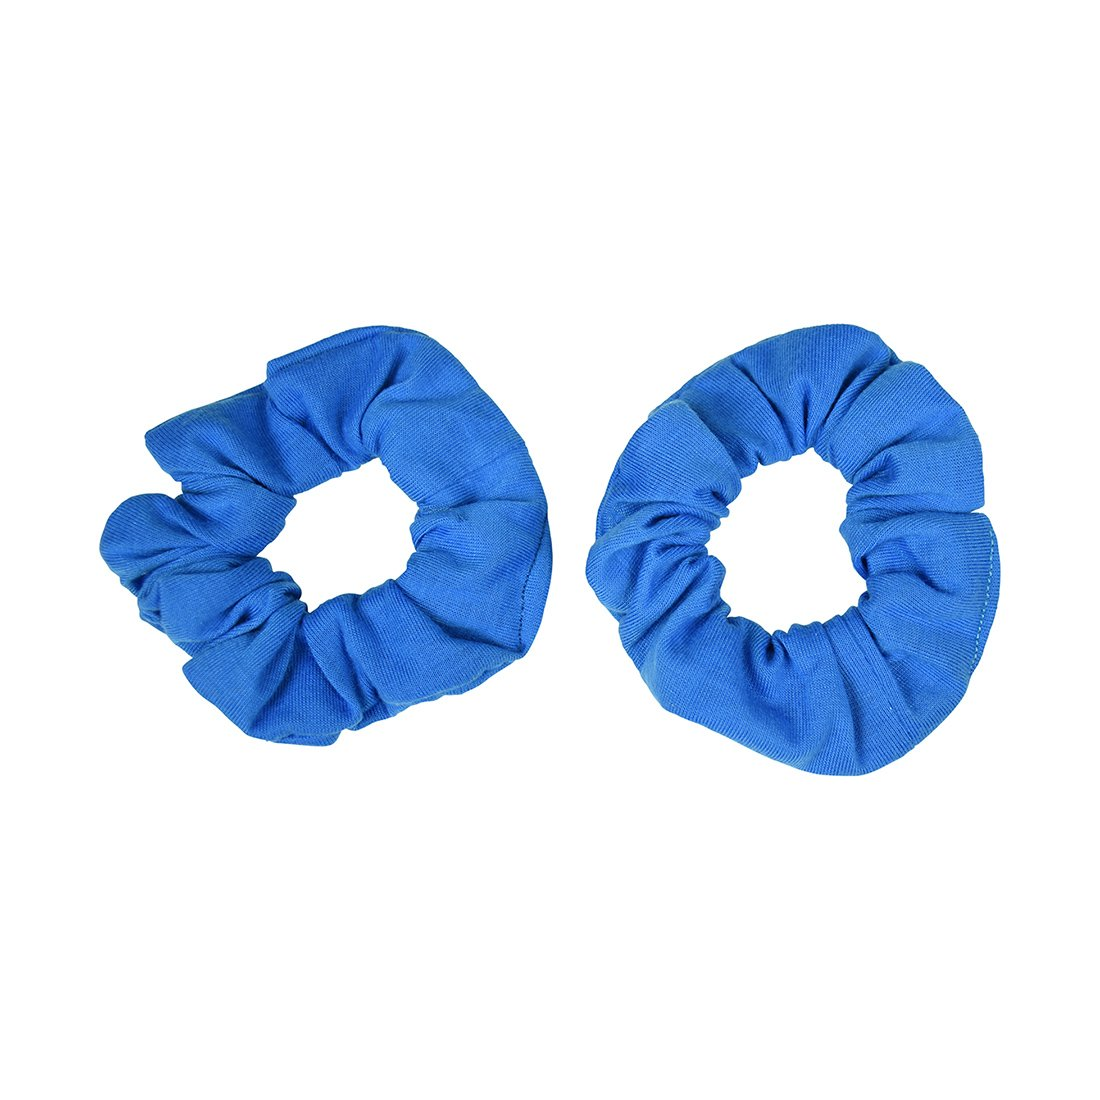 Set of 2 Solid Scrunchies - Blue